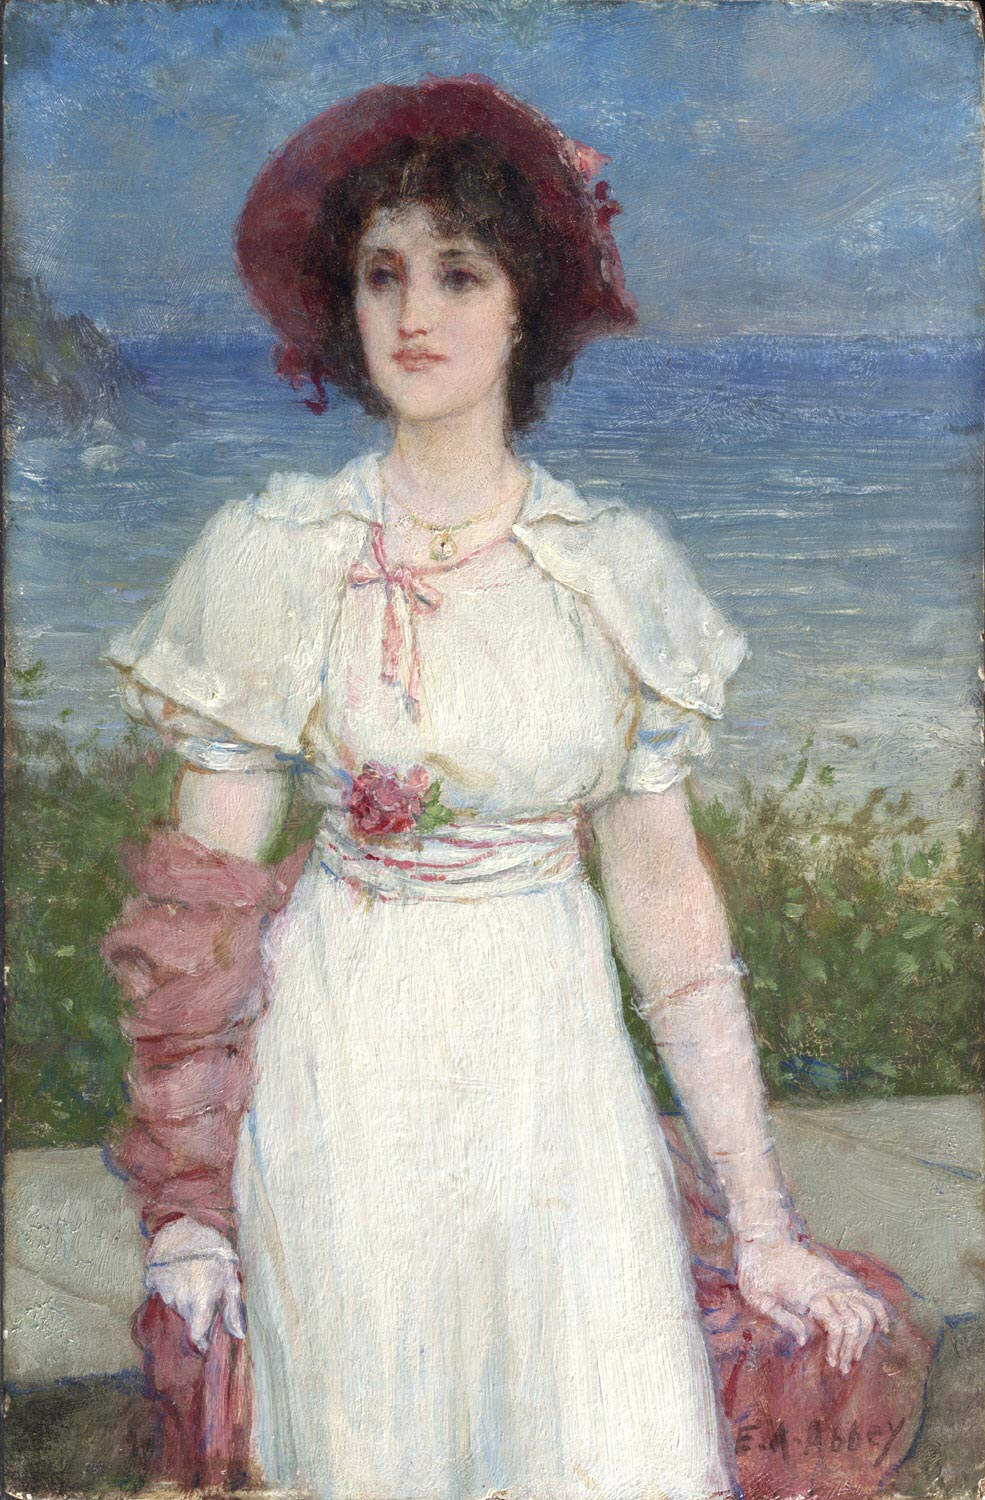 Young Woman in White by the Sea